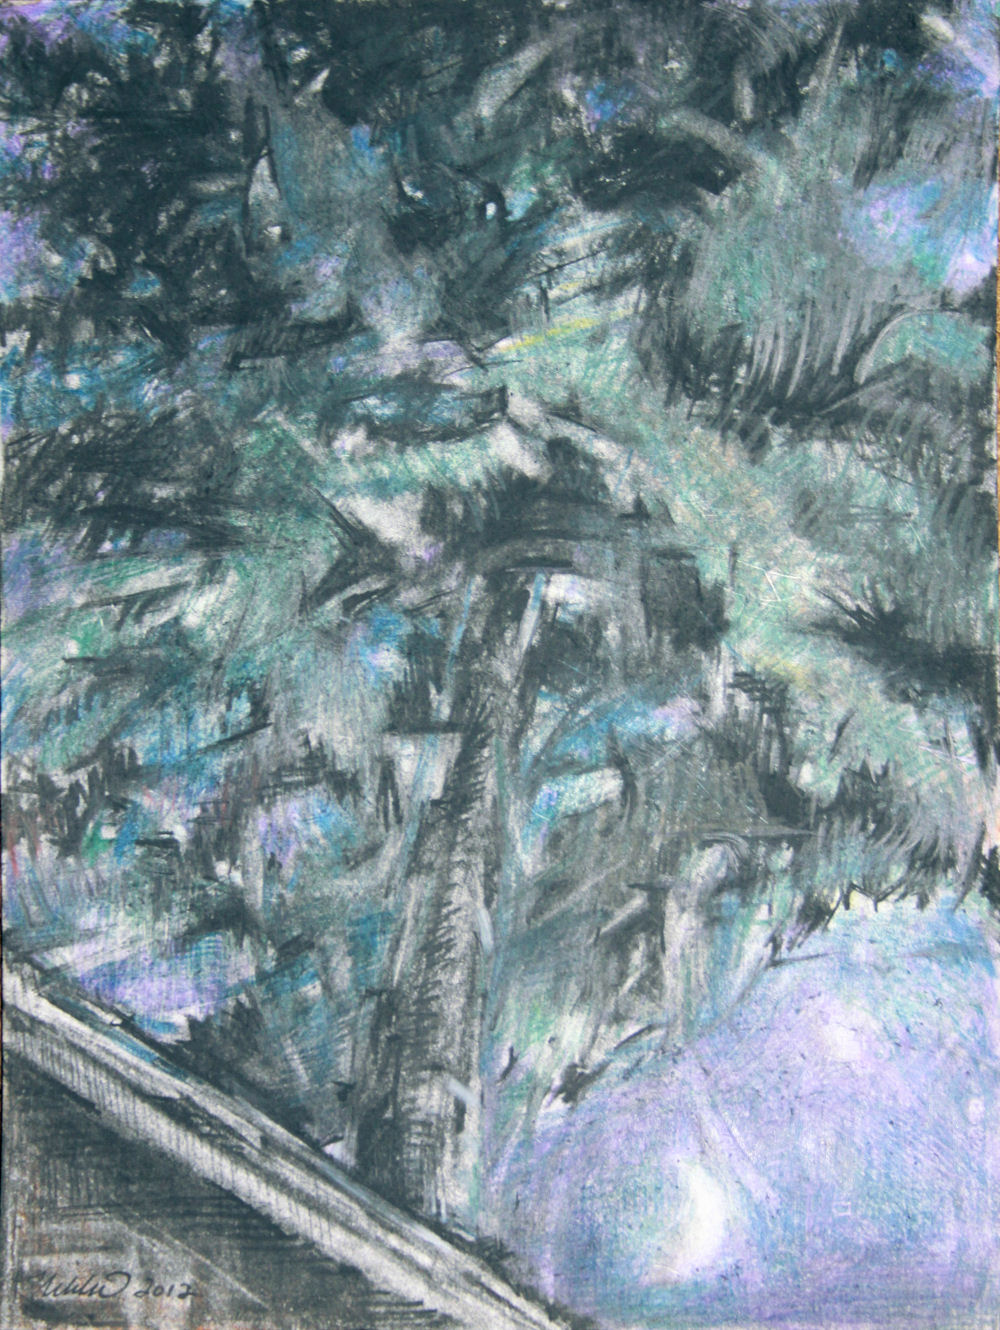 Stars in the Sweetgum, 12H x 9W inches charcoal and colored pencils on paper